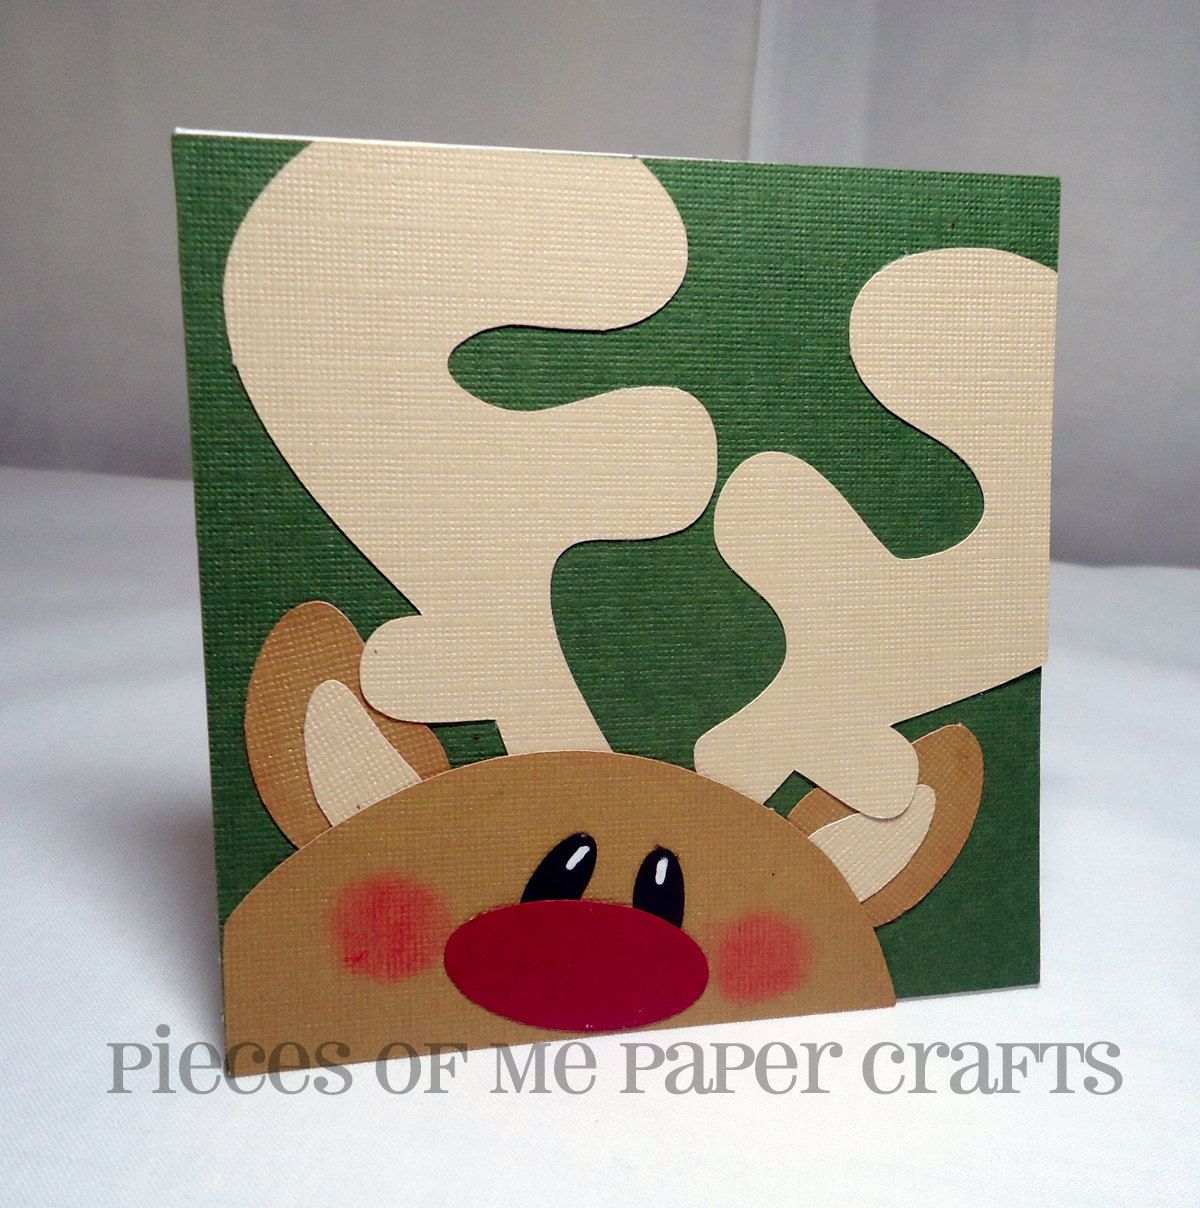 Pieces Of Me Scrapbooking Paper Crafts Winter Faces Christmas  ~ Postales Navideñas Originales Manualidades